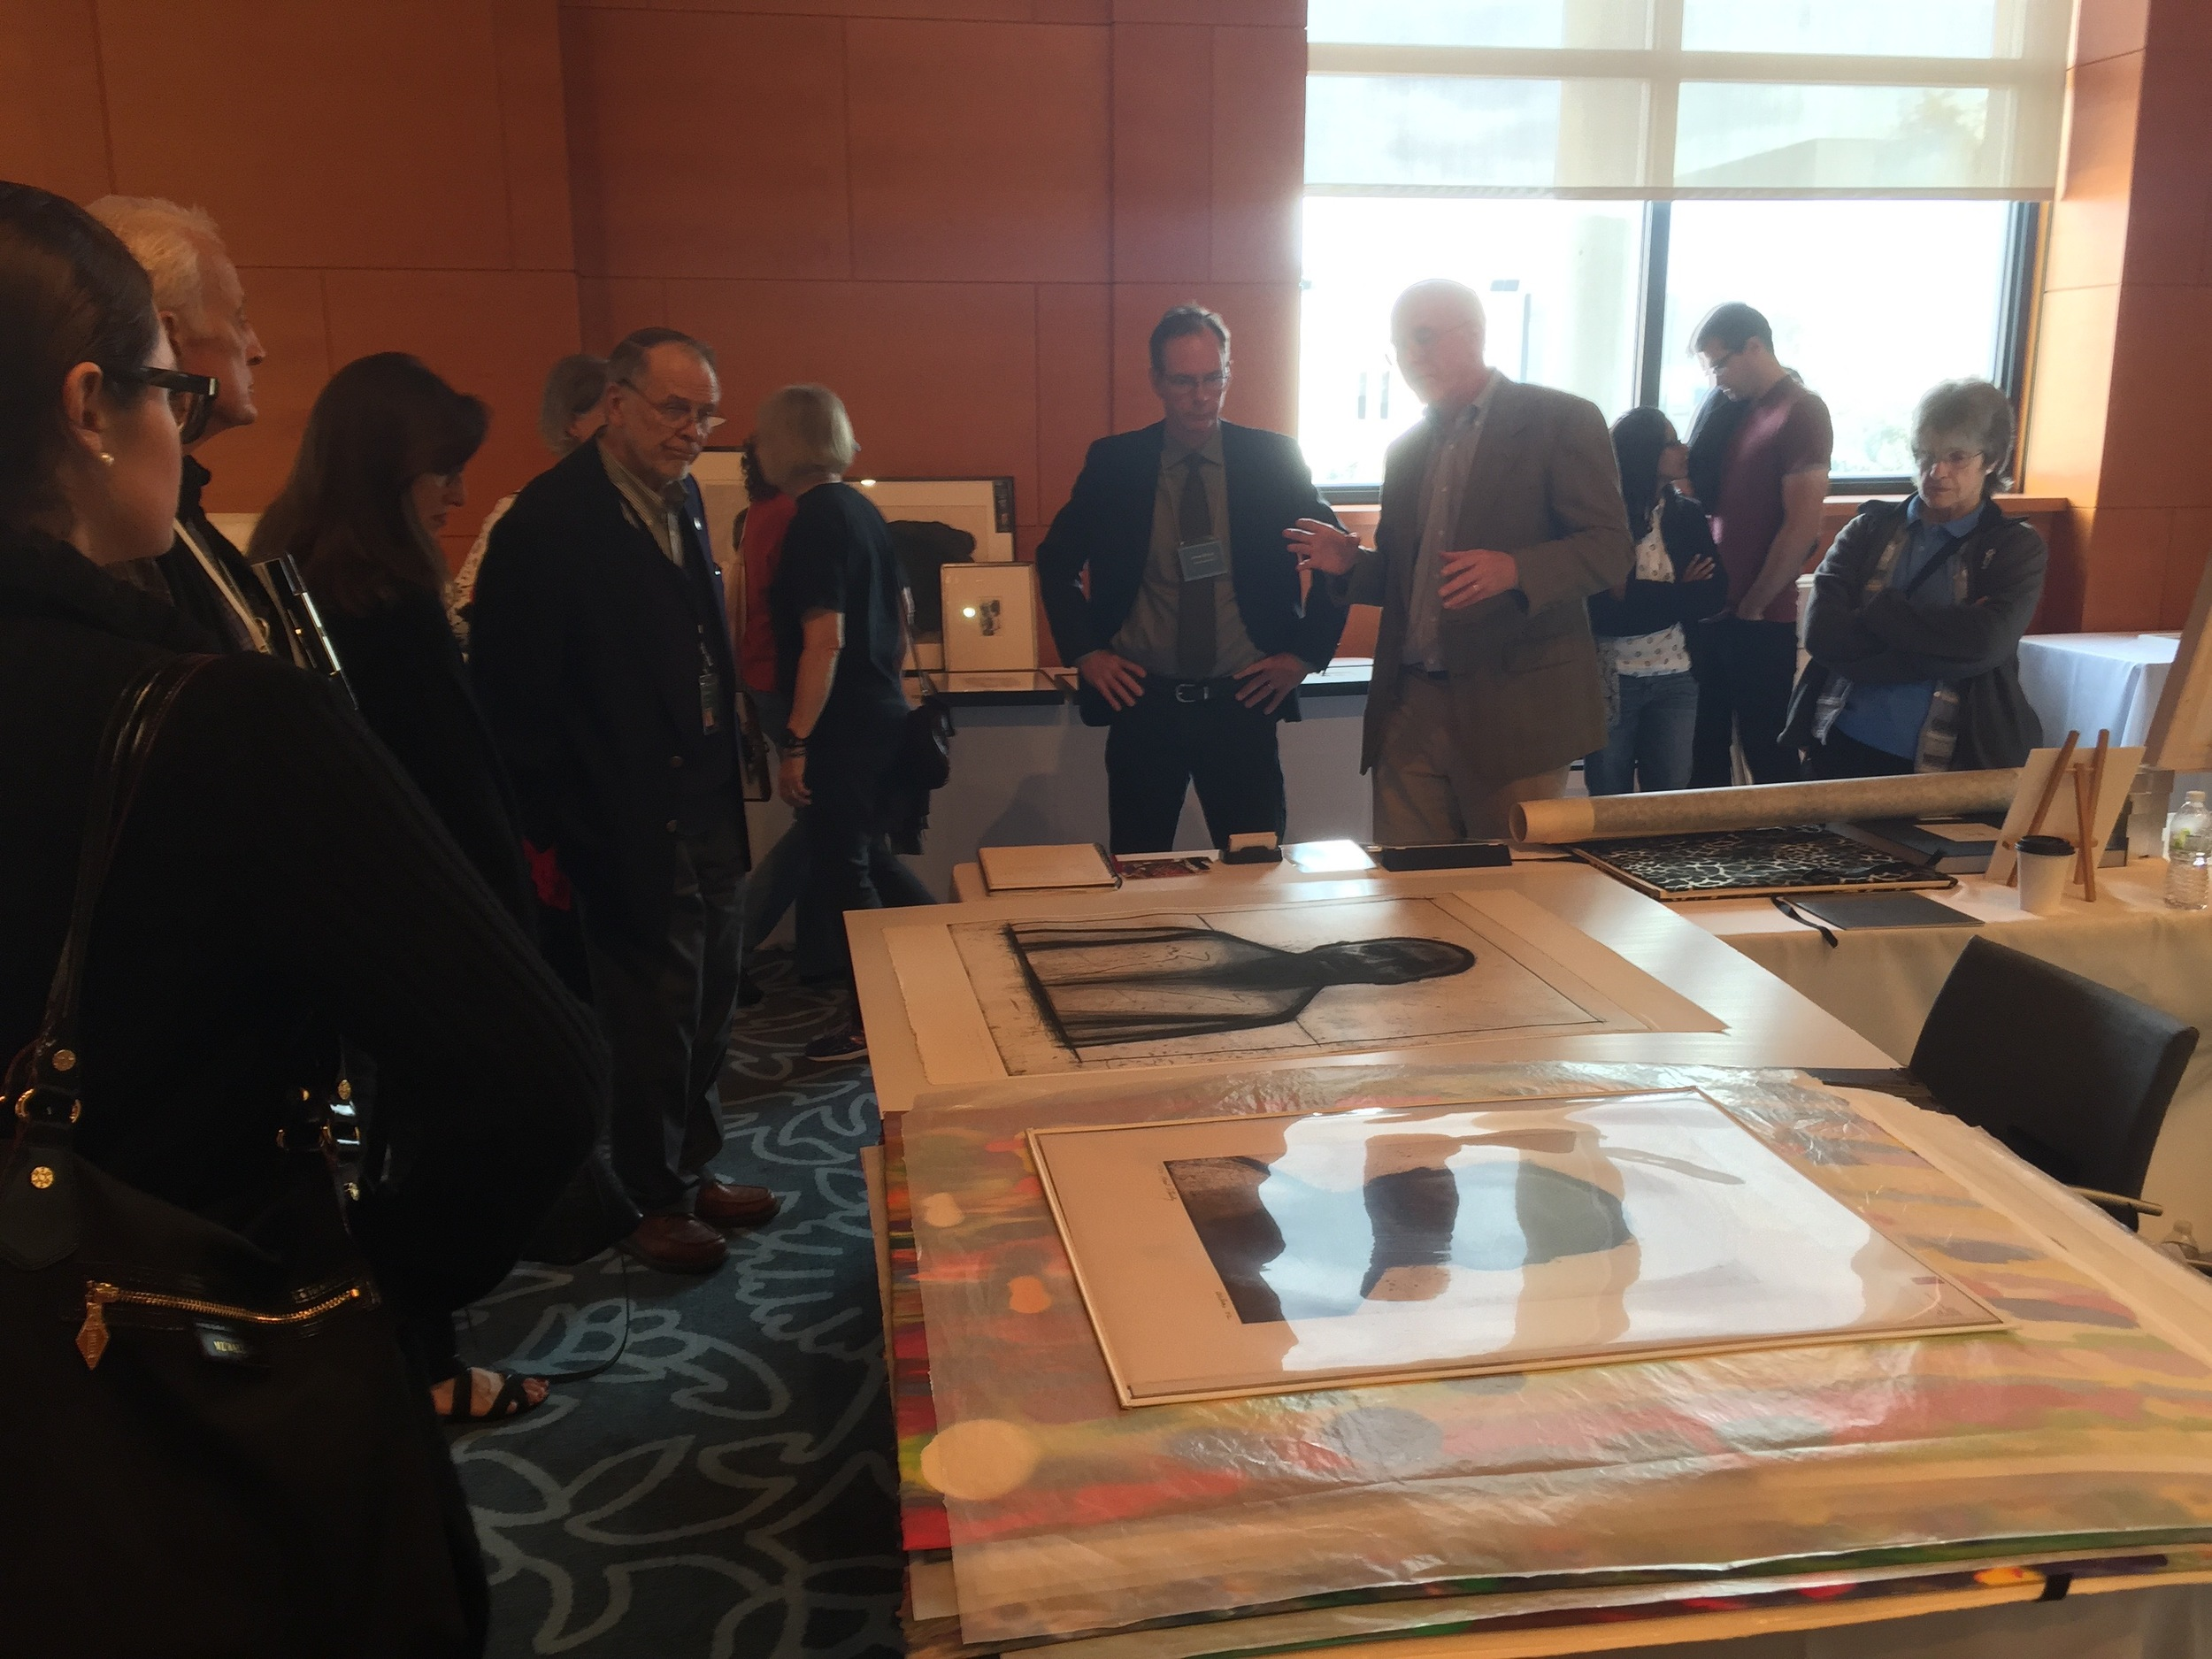 James Stroud and Tom Rassieur give a presentation on John Wilson's  Martin Luther King, Jr.  etching at the CSS booth during the Minneapolis Institute of Art's Prints and Drawings Fair in October 2015.